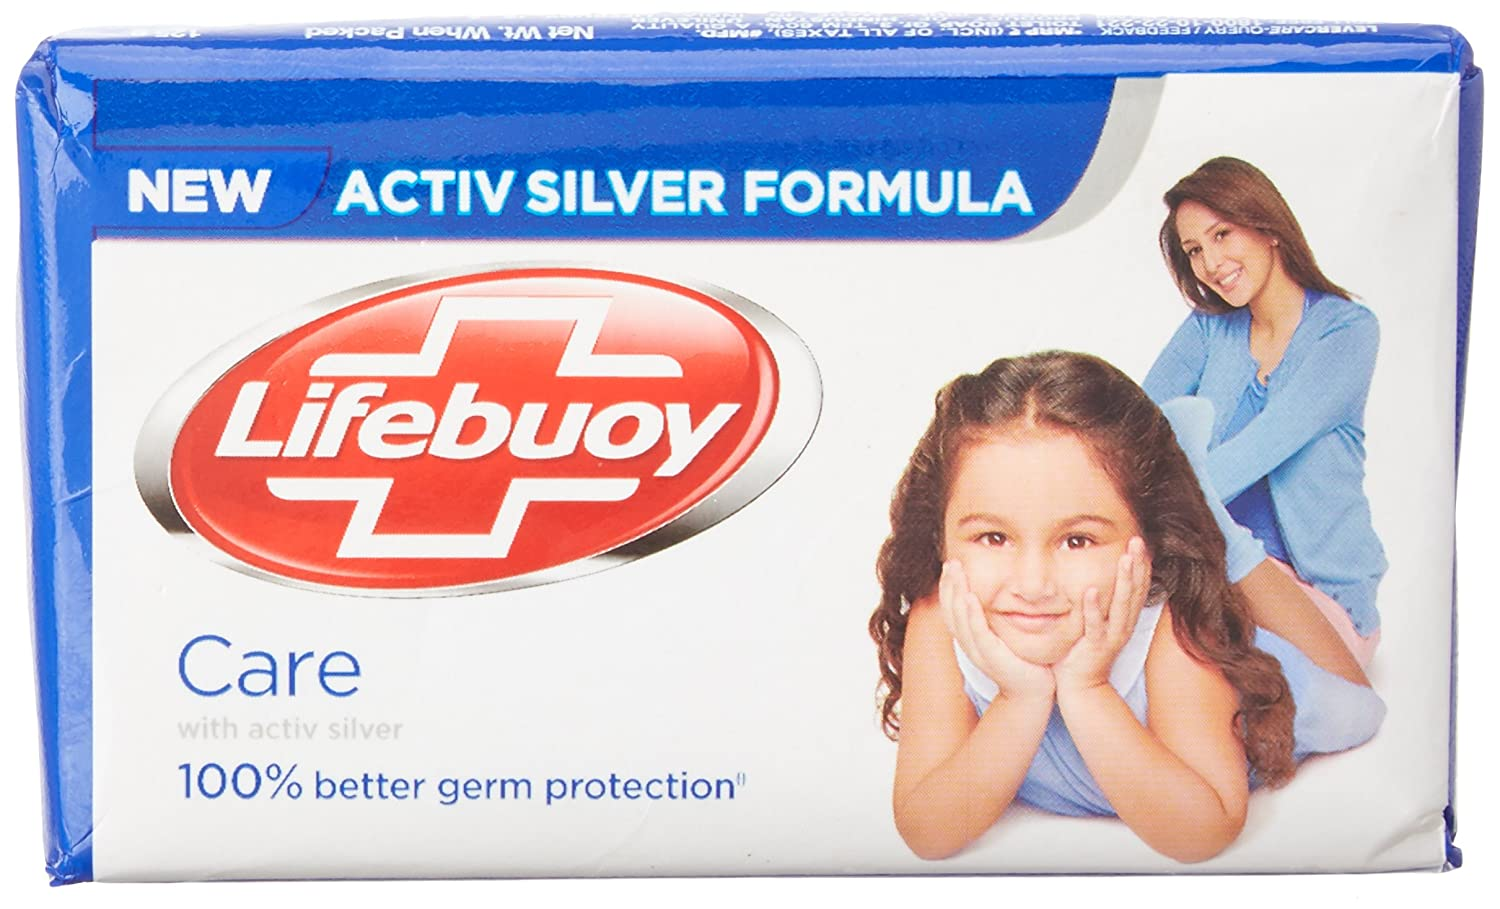 Lifebuoy Care Soap Bar